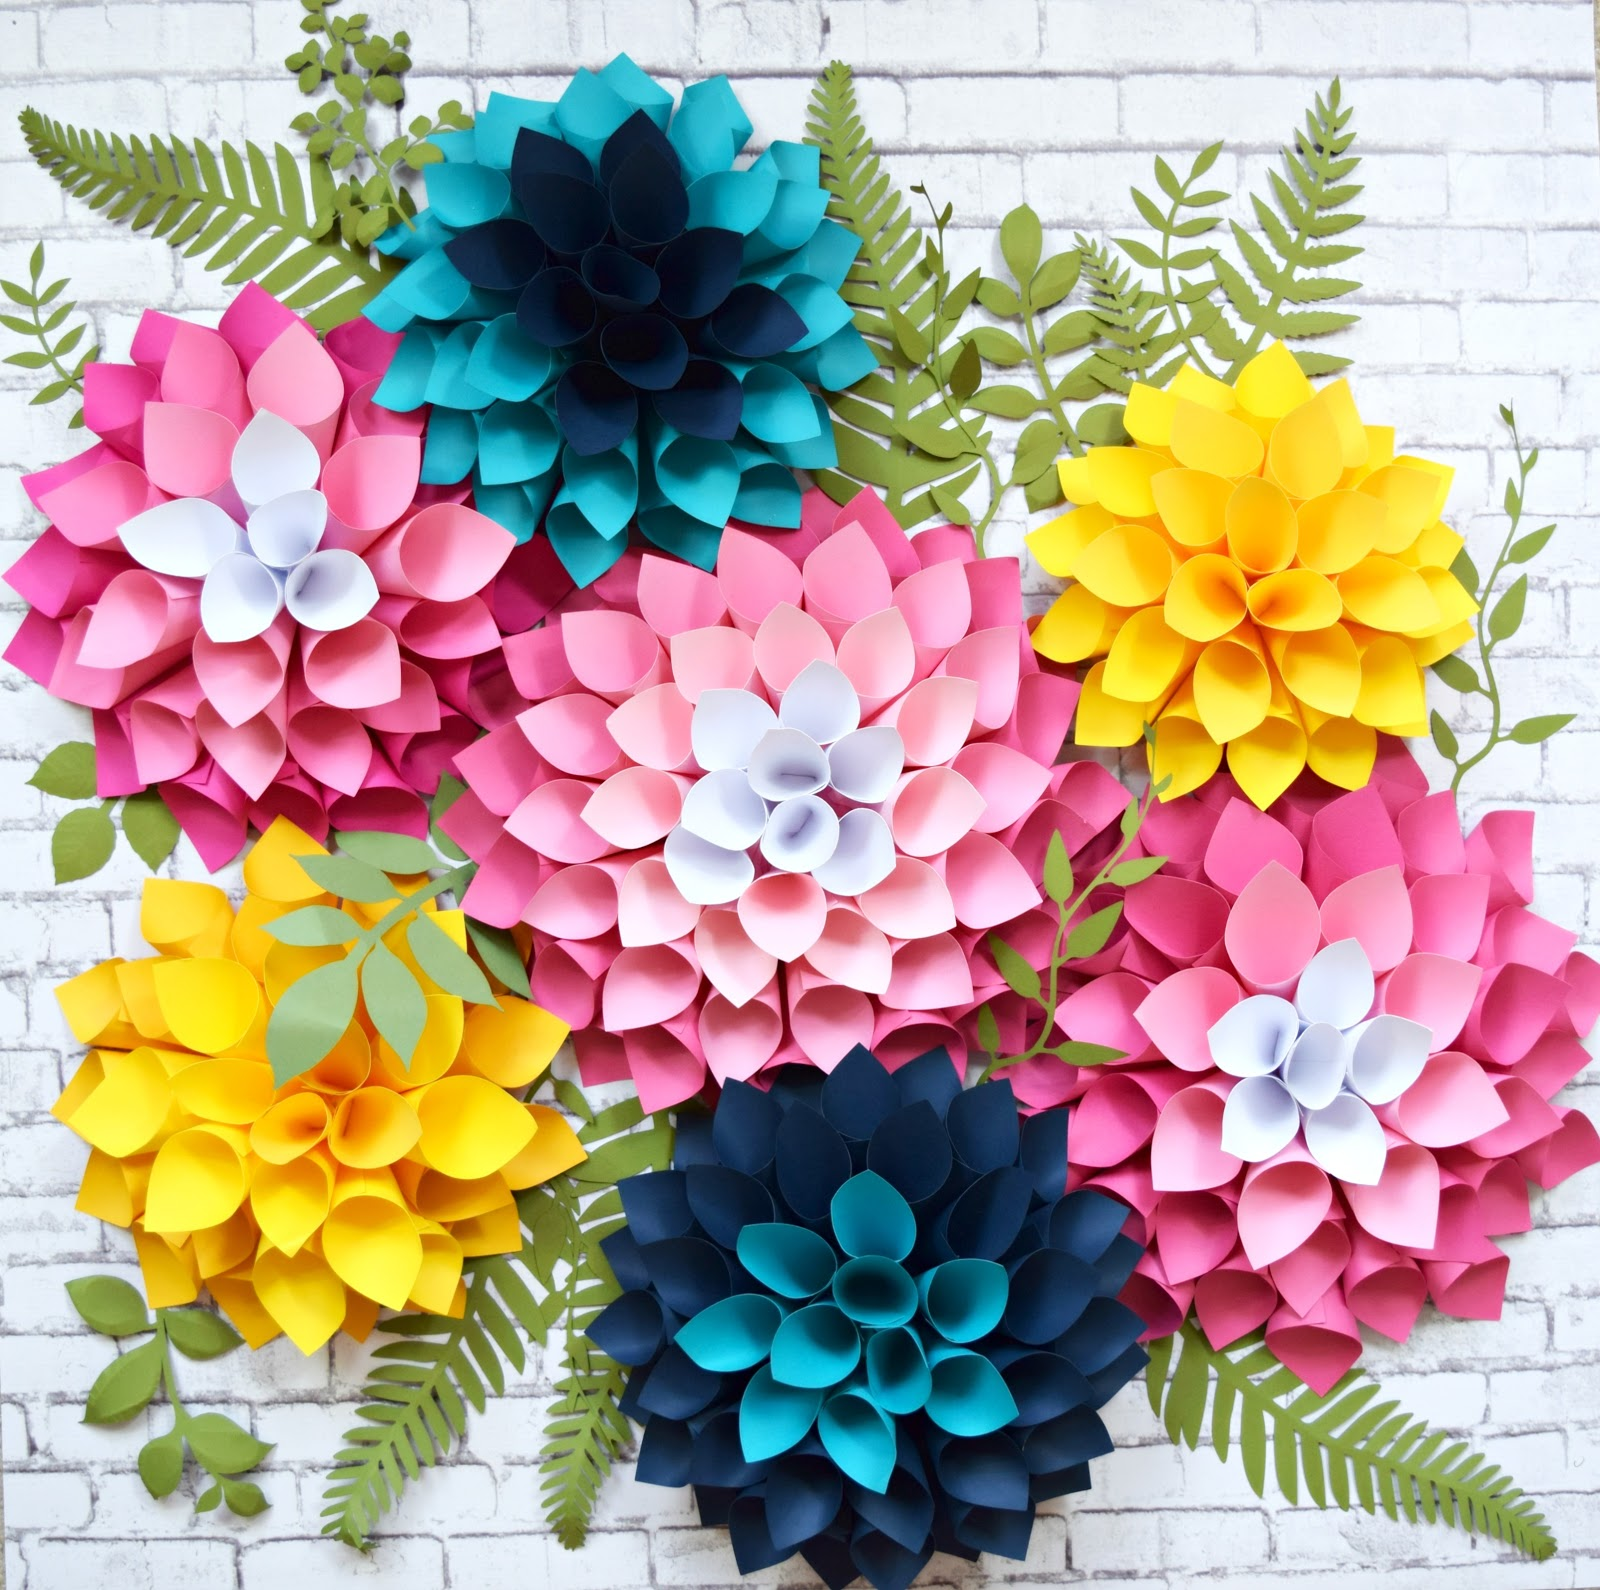 Diy giant dahlia paper flowers how to make large paper dahlias how to make giant paper dahlias paper flower templates diy giant dahlia paper flowers izmirmasajfo